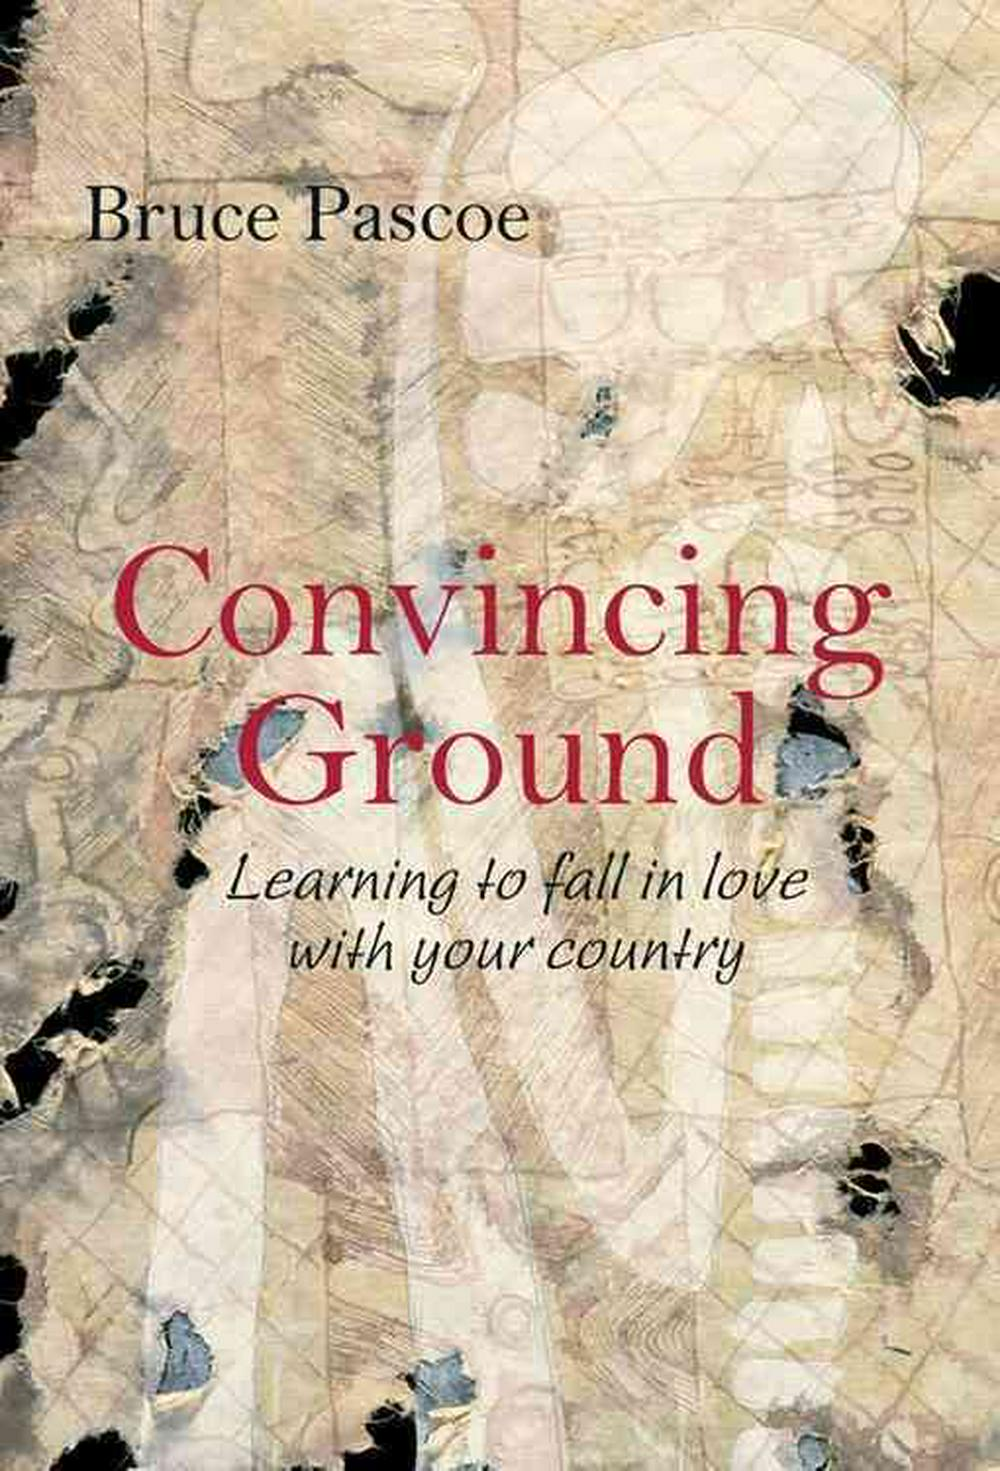 Convincing Ground by Bruce Pascoe, ISBN: 9780855755492